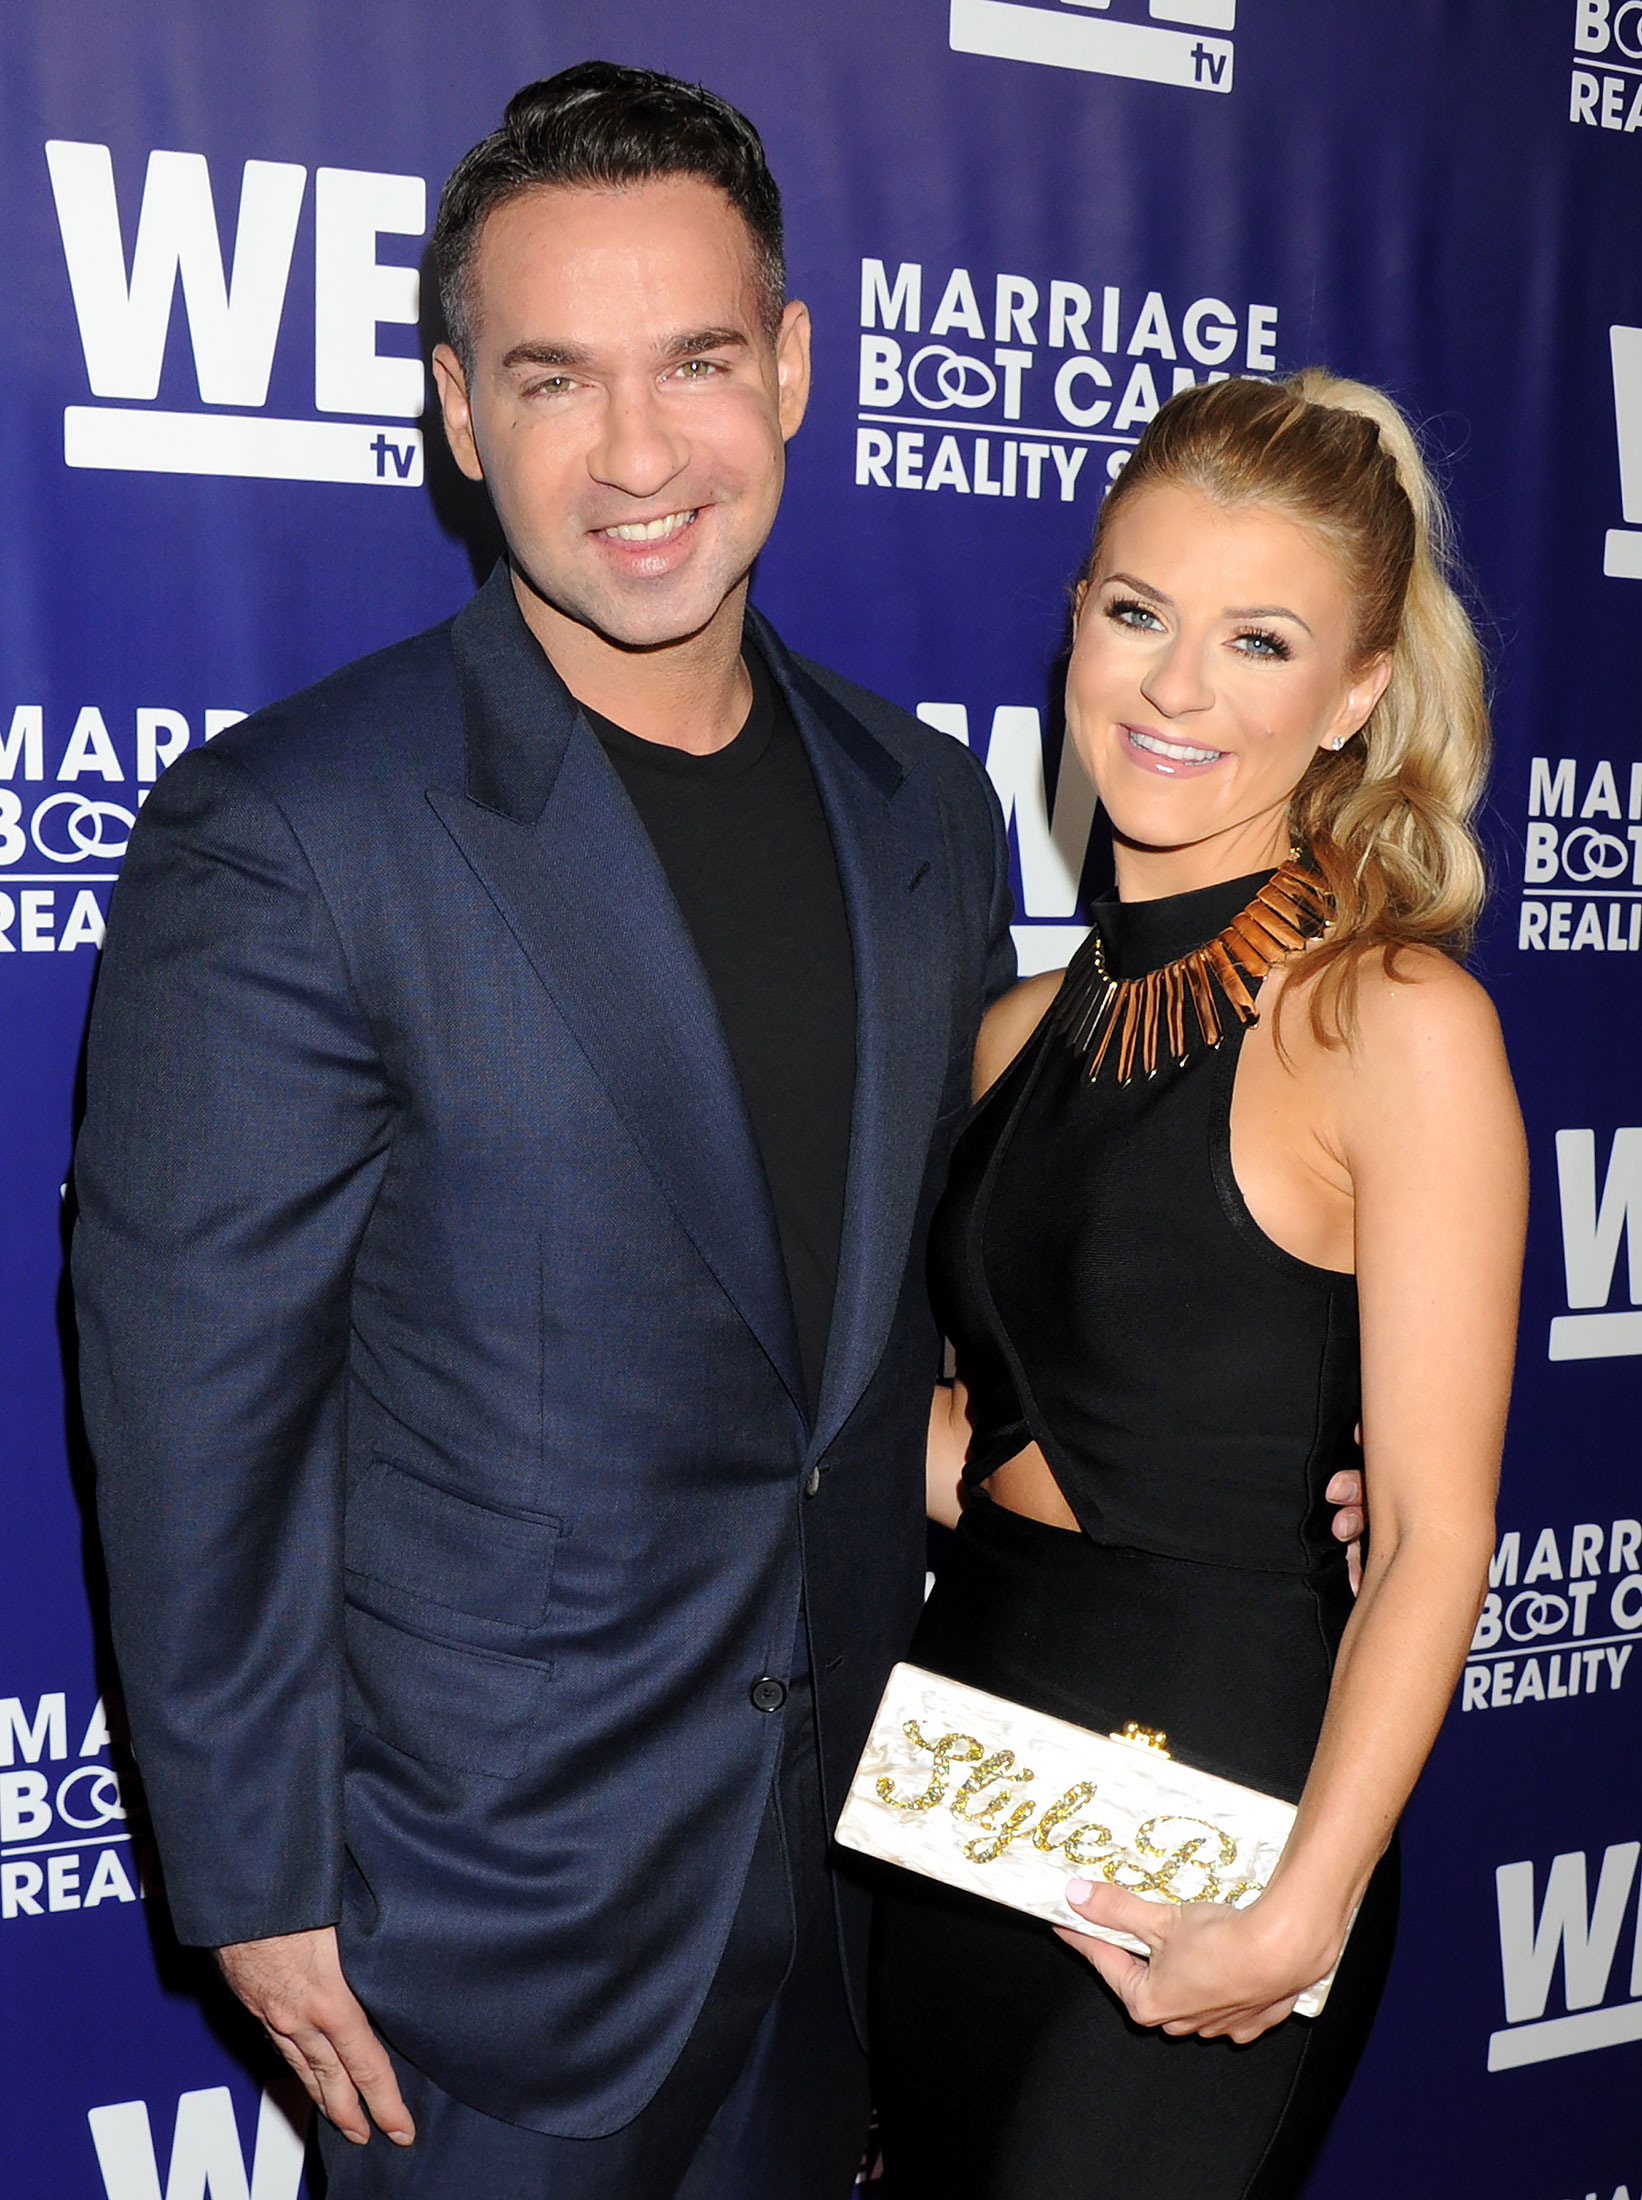 Mike 'The Situation', Lauren Sorrentino Welcome Rainbow Baby